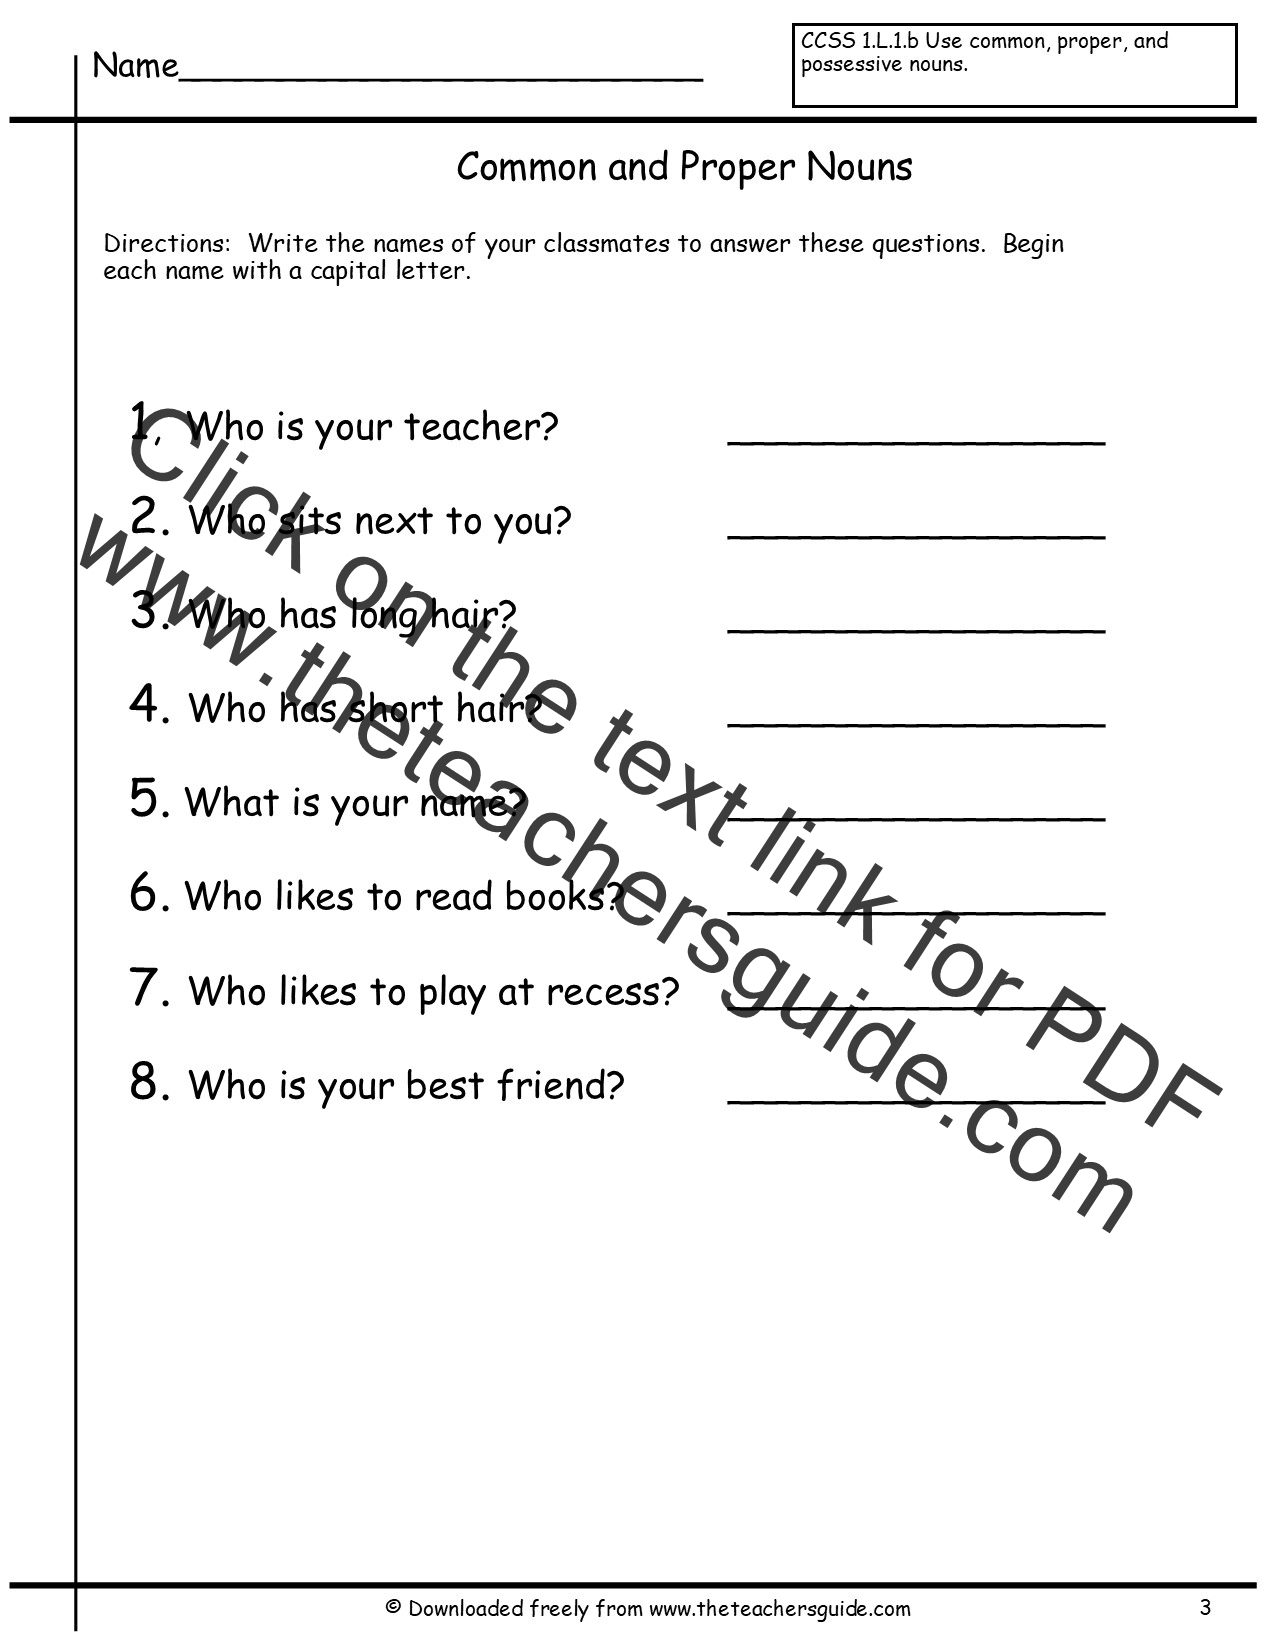 Worksheet Worksheet Of Nouns common and proper nouns worksheets from the teachers guide worksheet